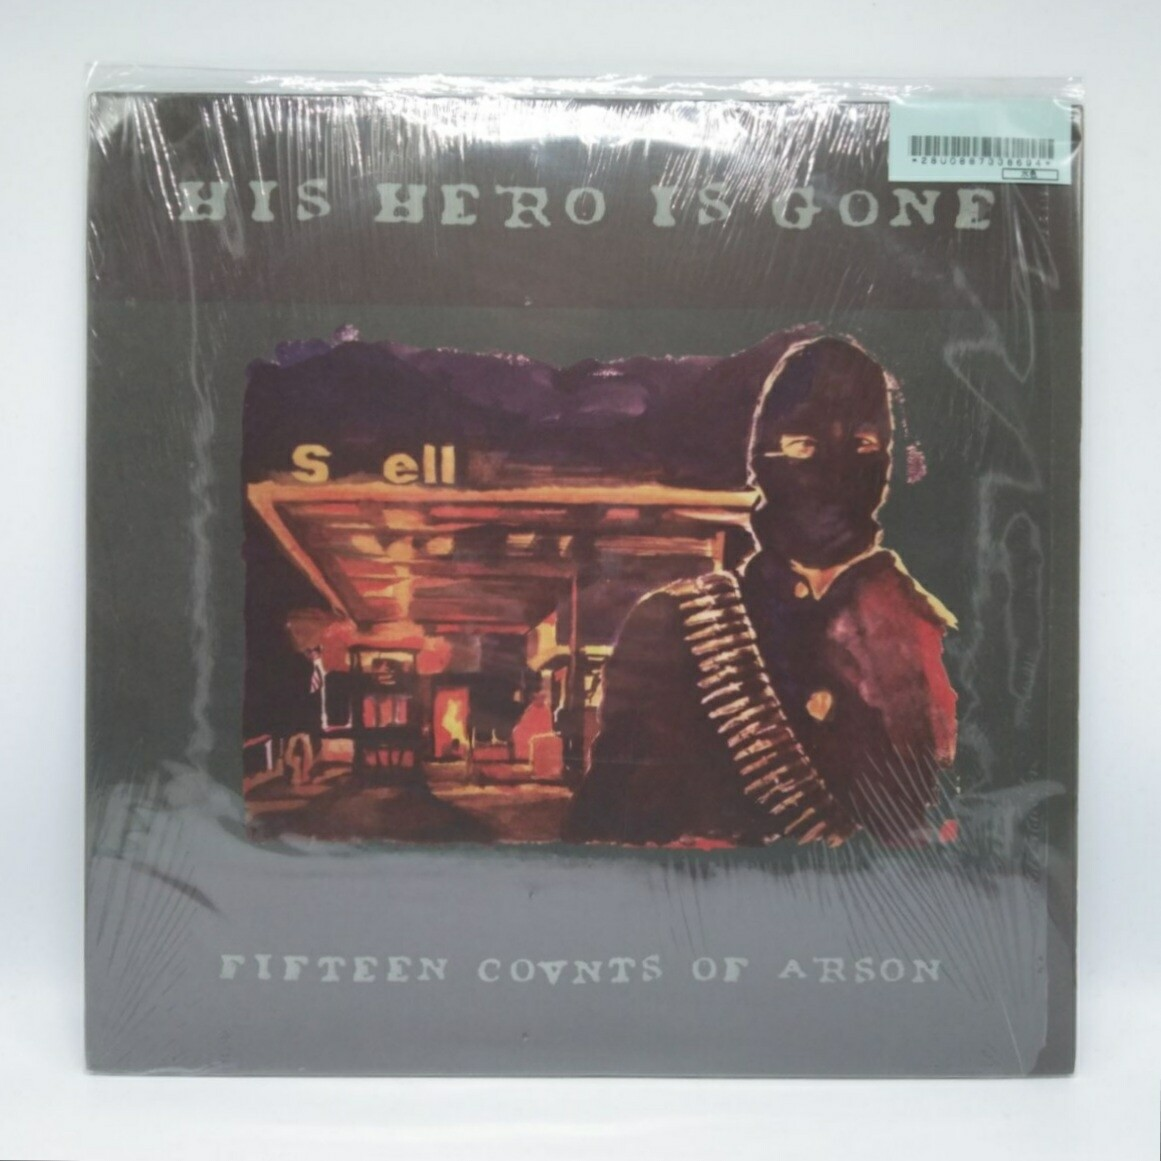 [USED] HIS HERO IS GONE -FIFTEEN COVNTS OF ARSON- LP